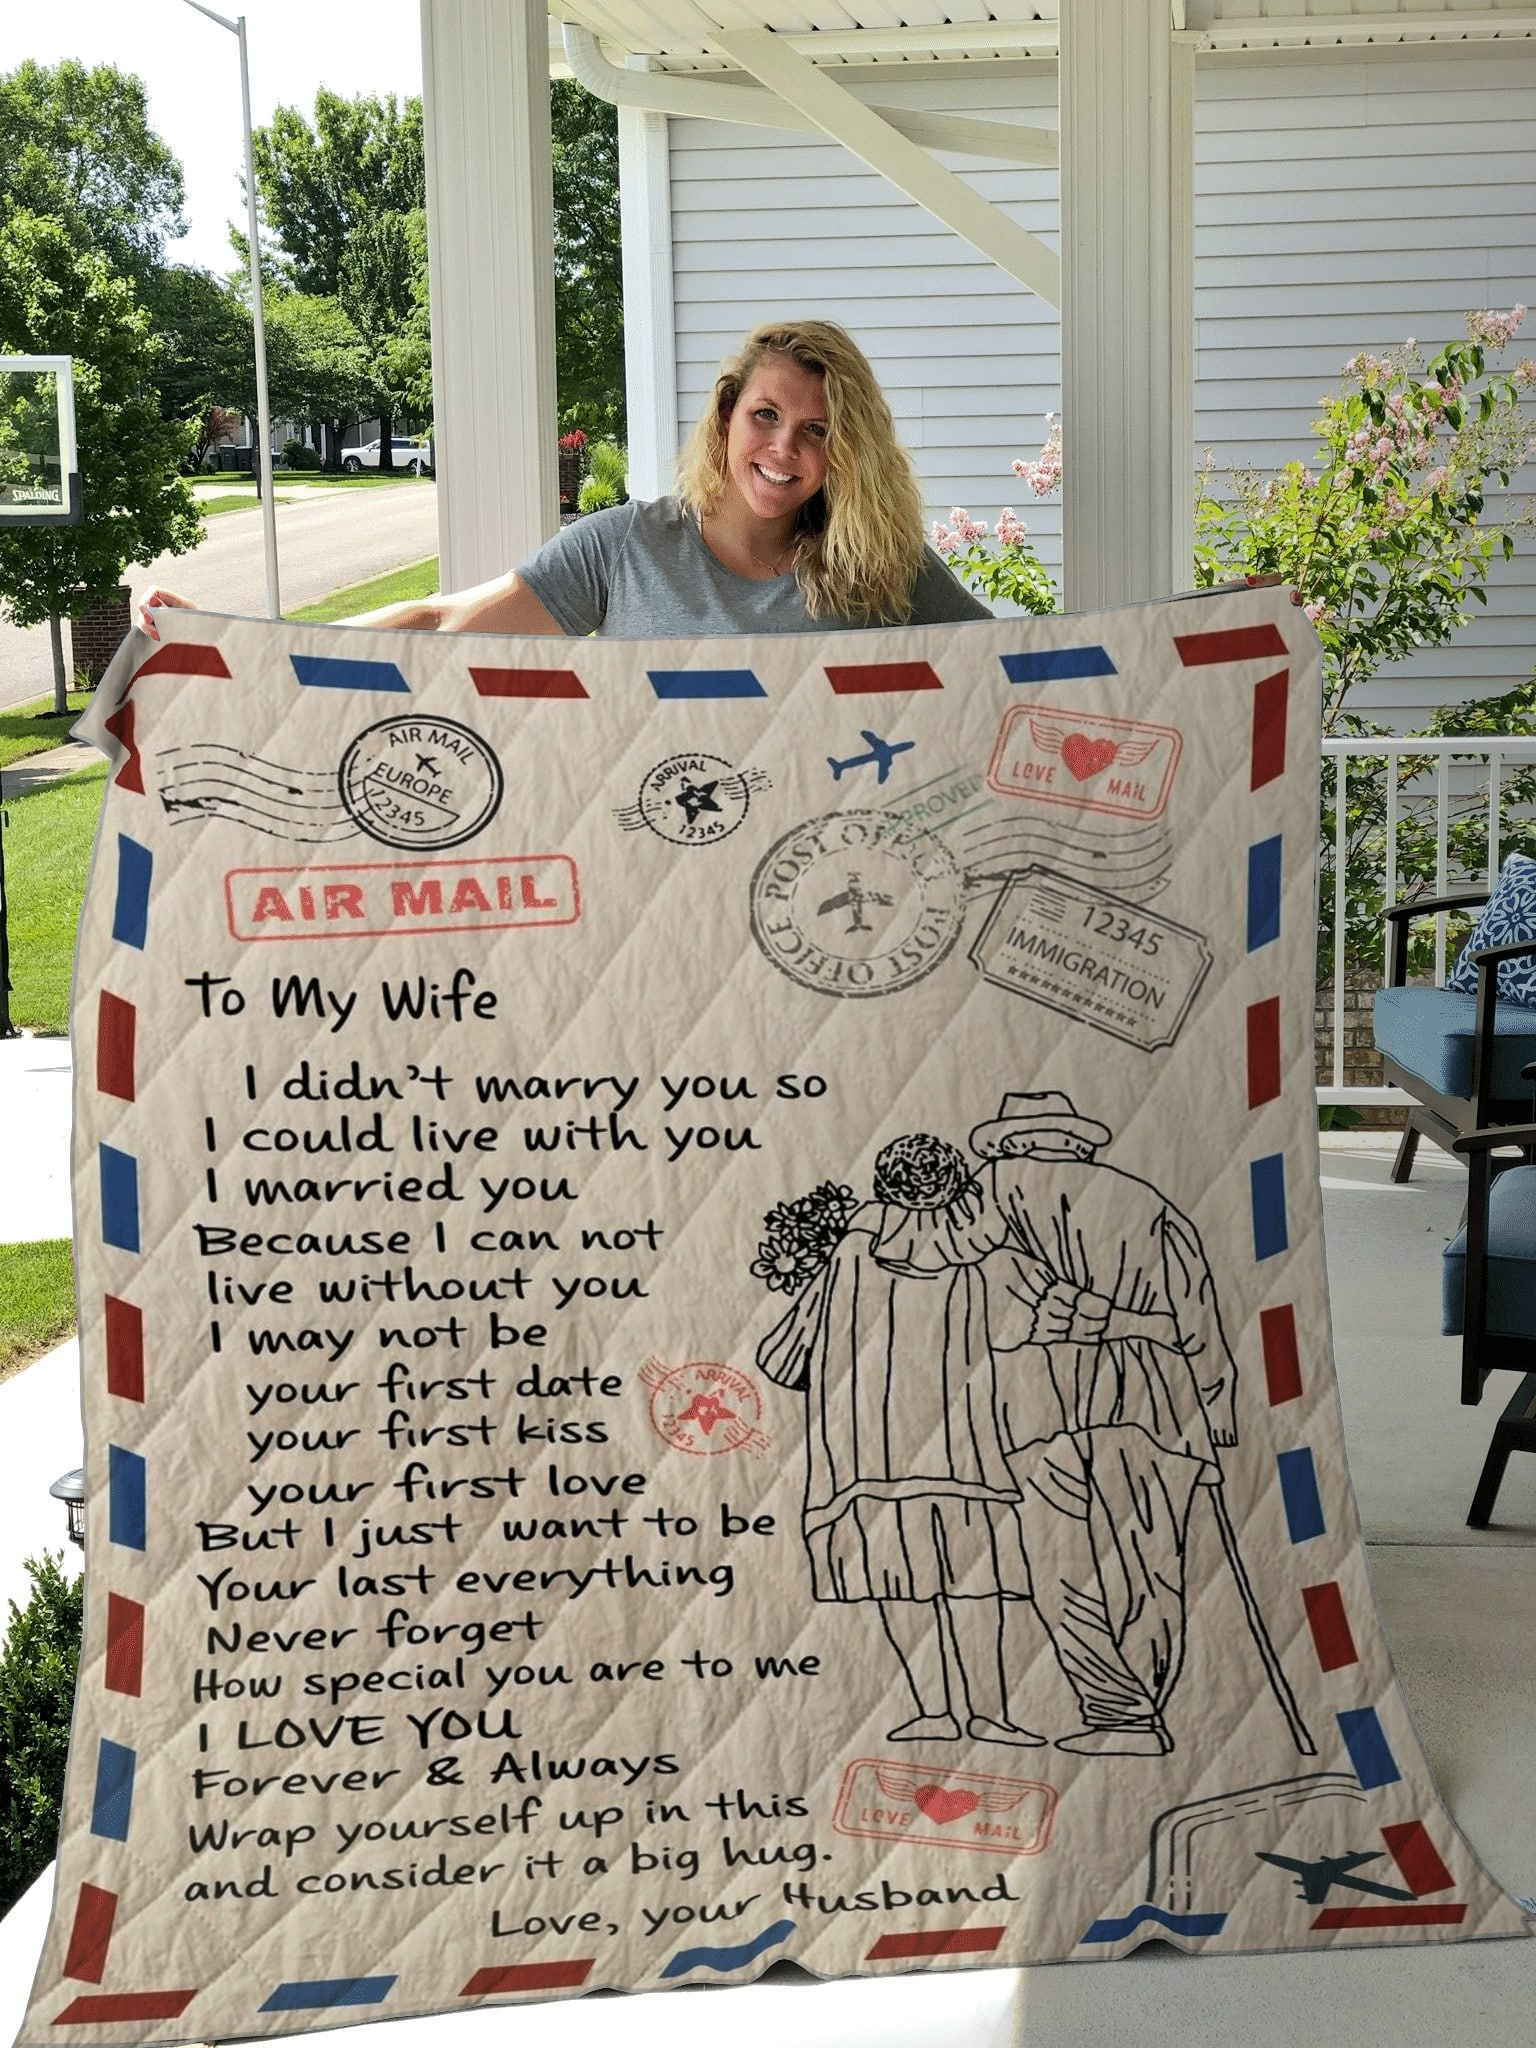 air mail letter to my wife i love you forever and always your husband quilt 5